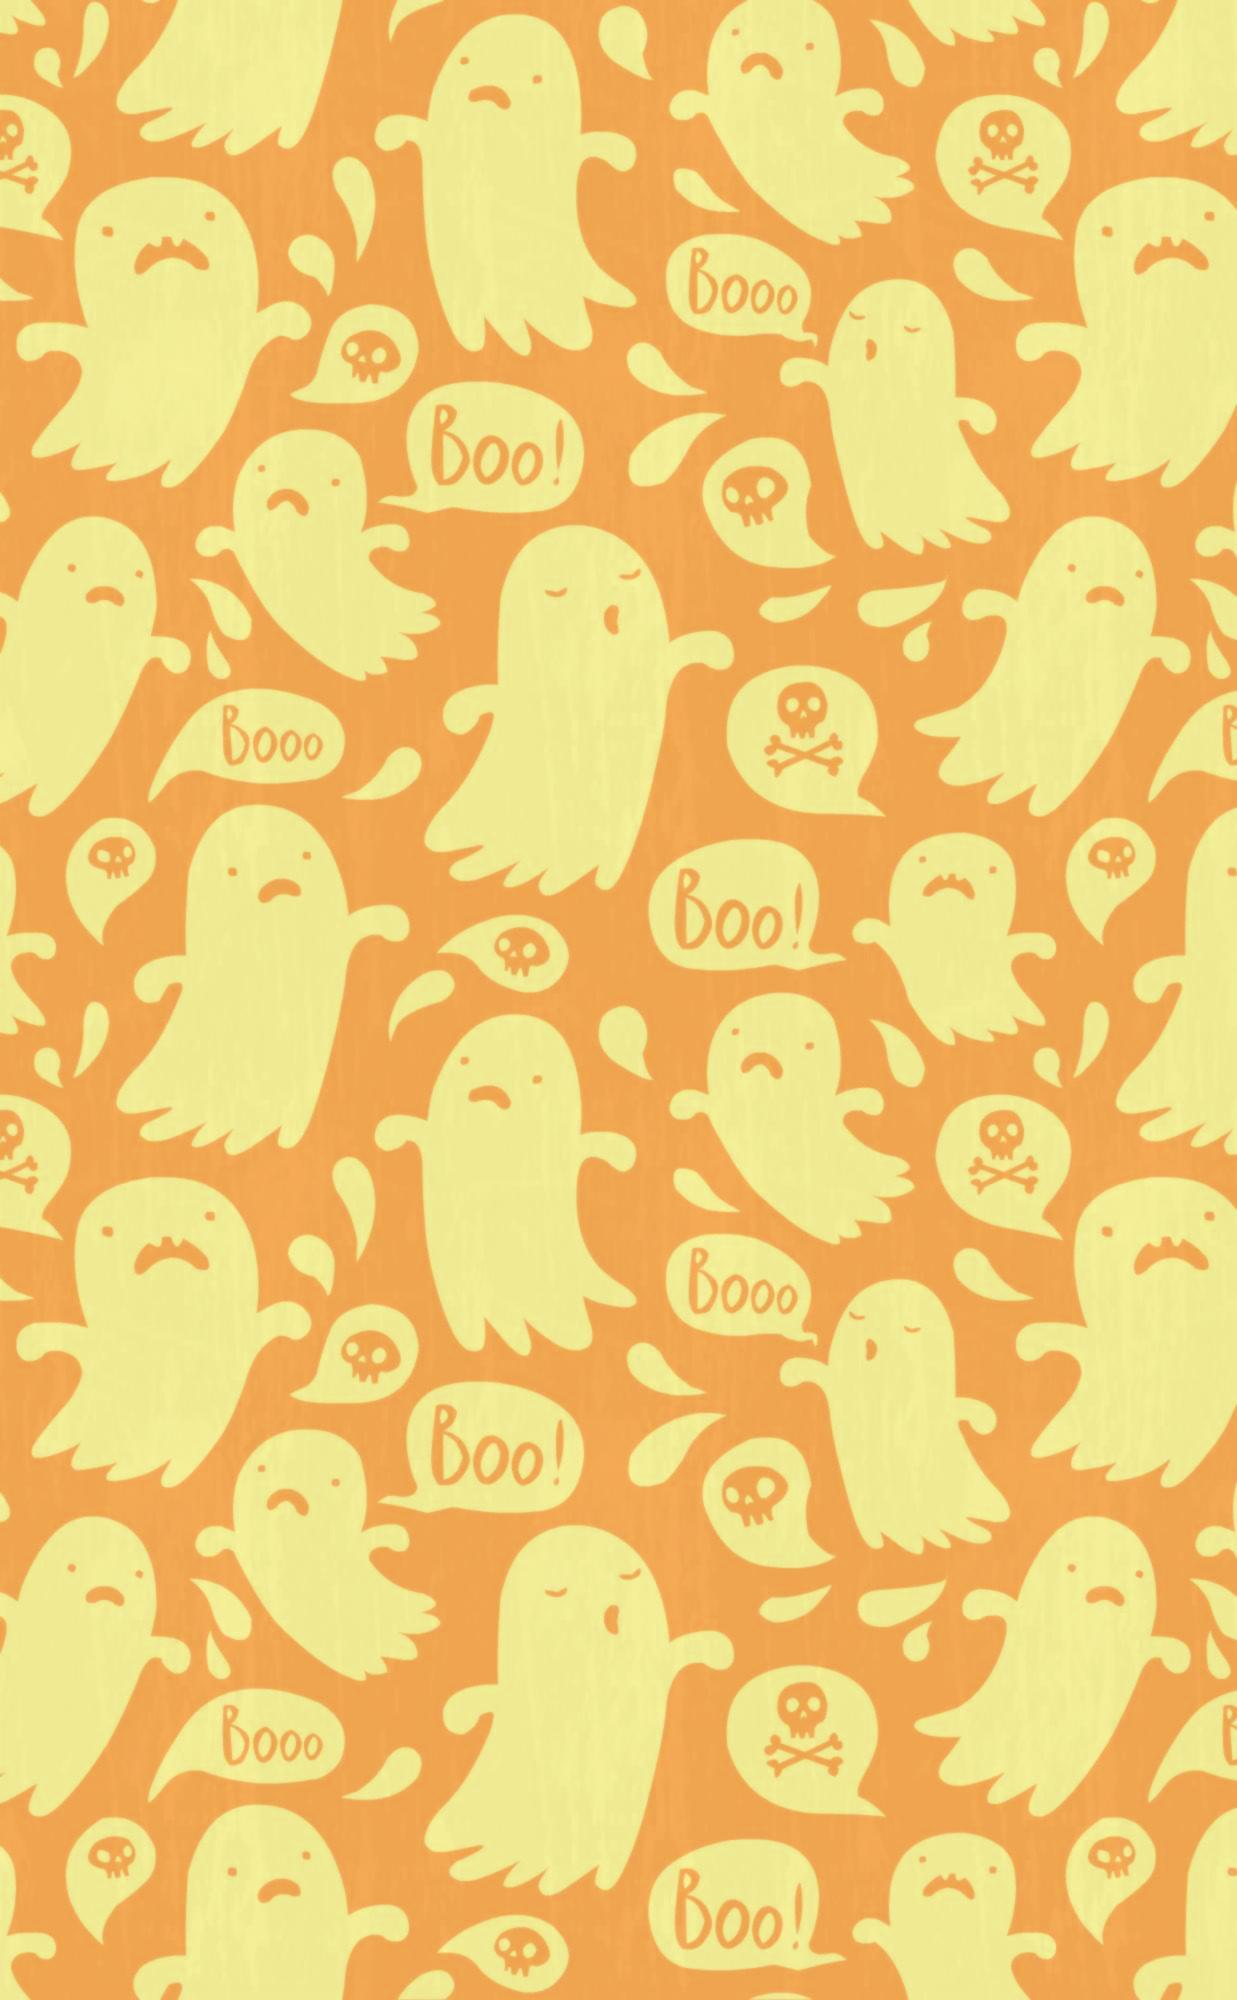 Halloween Lockscreen Wallpapers Wallpaper Cave